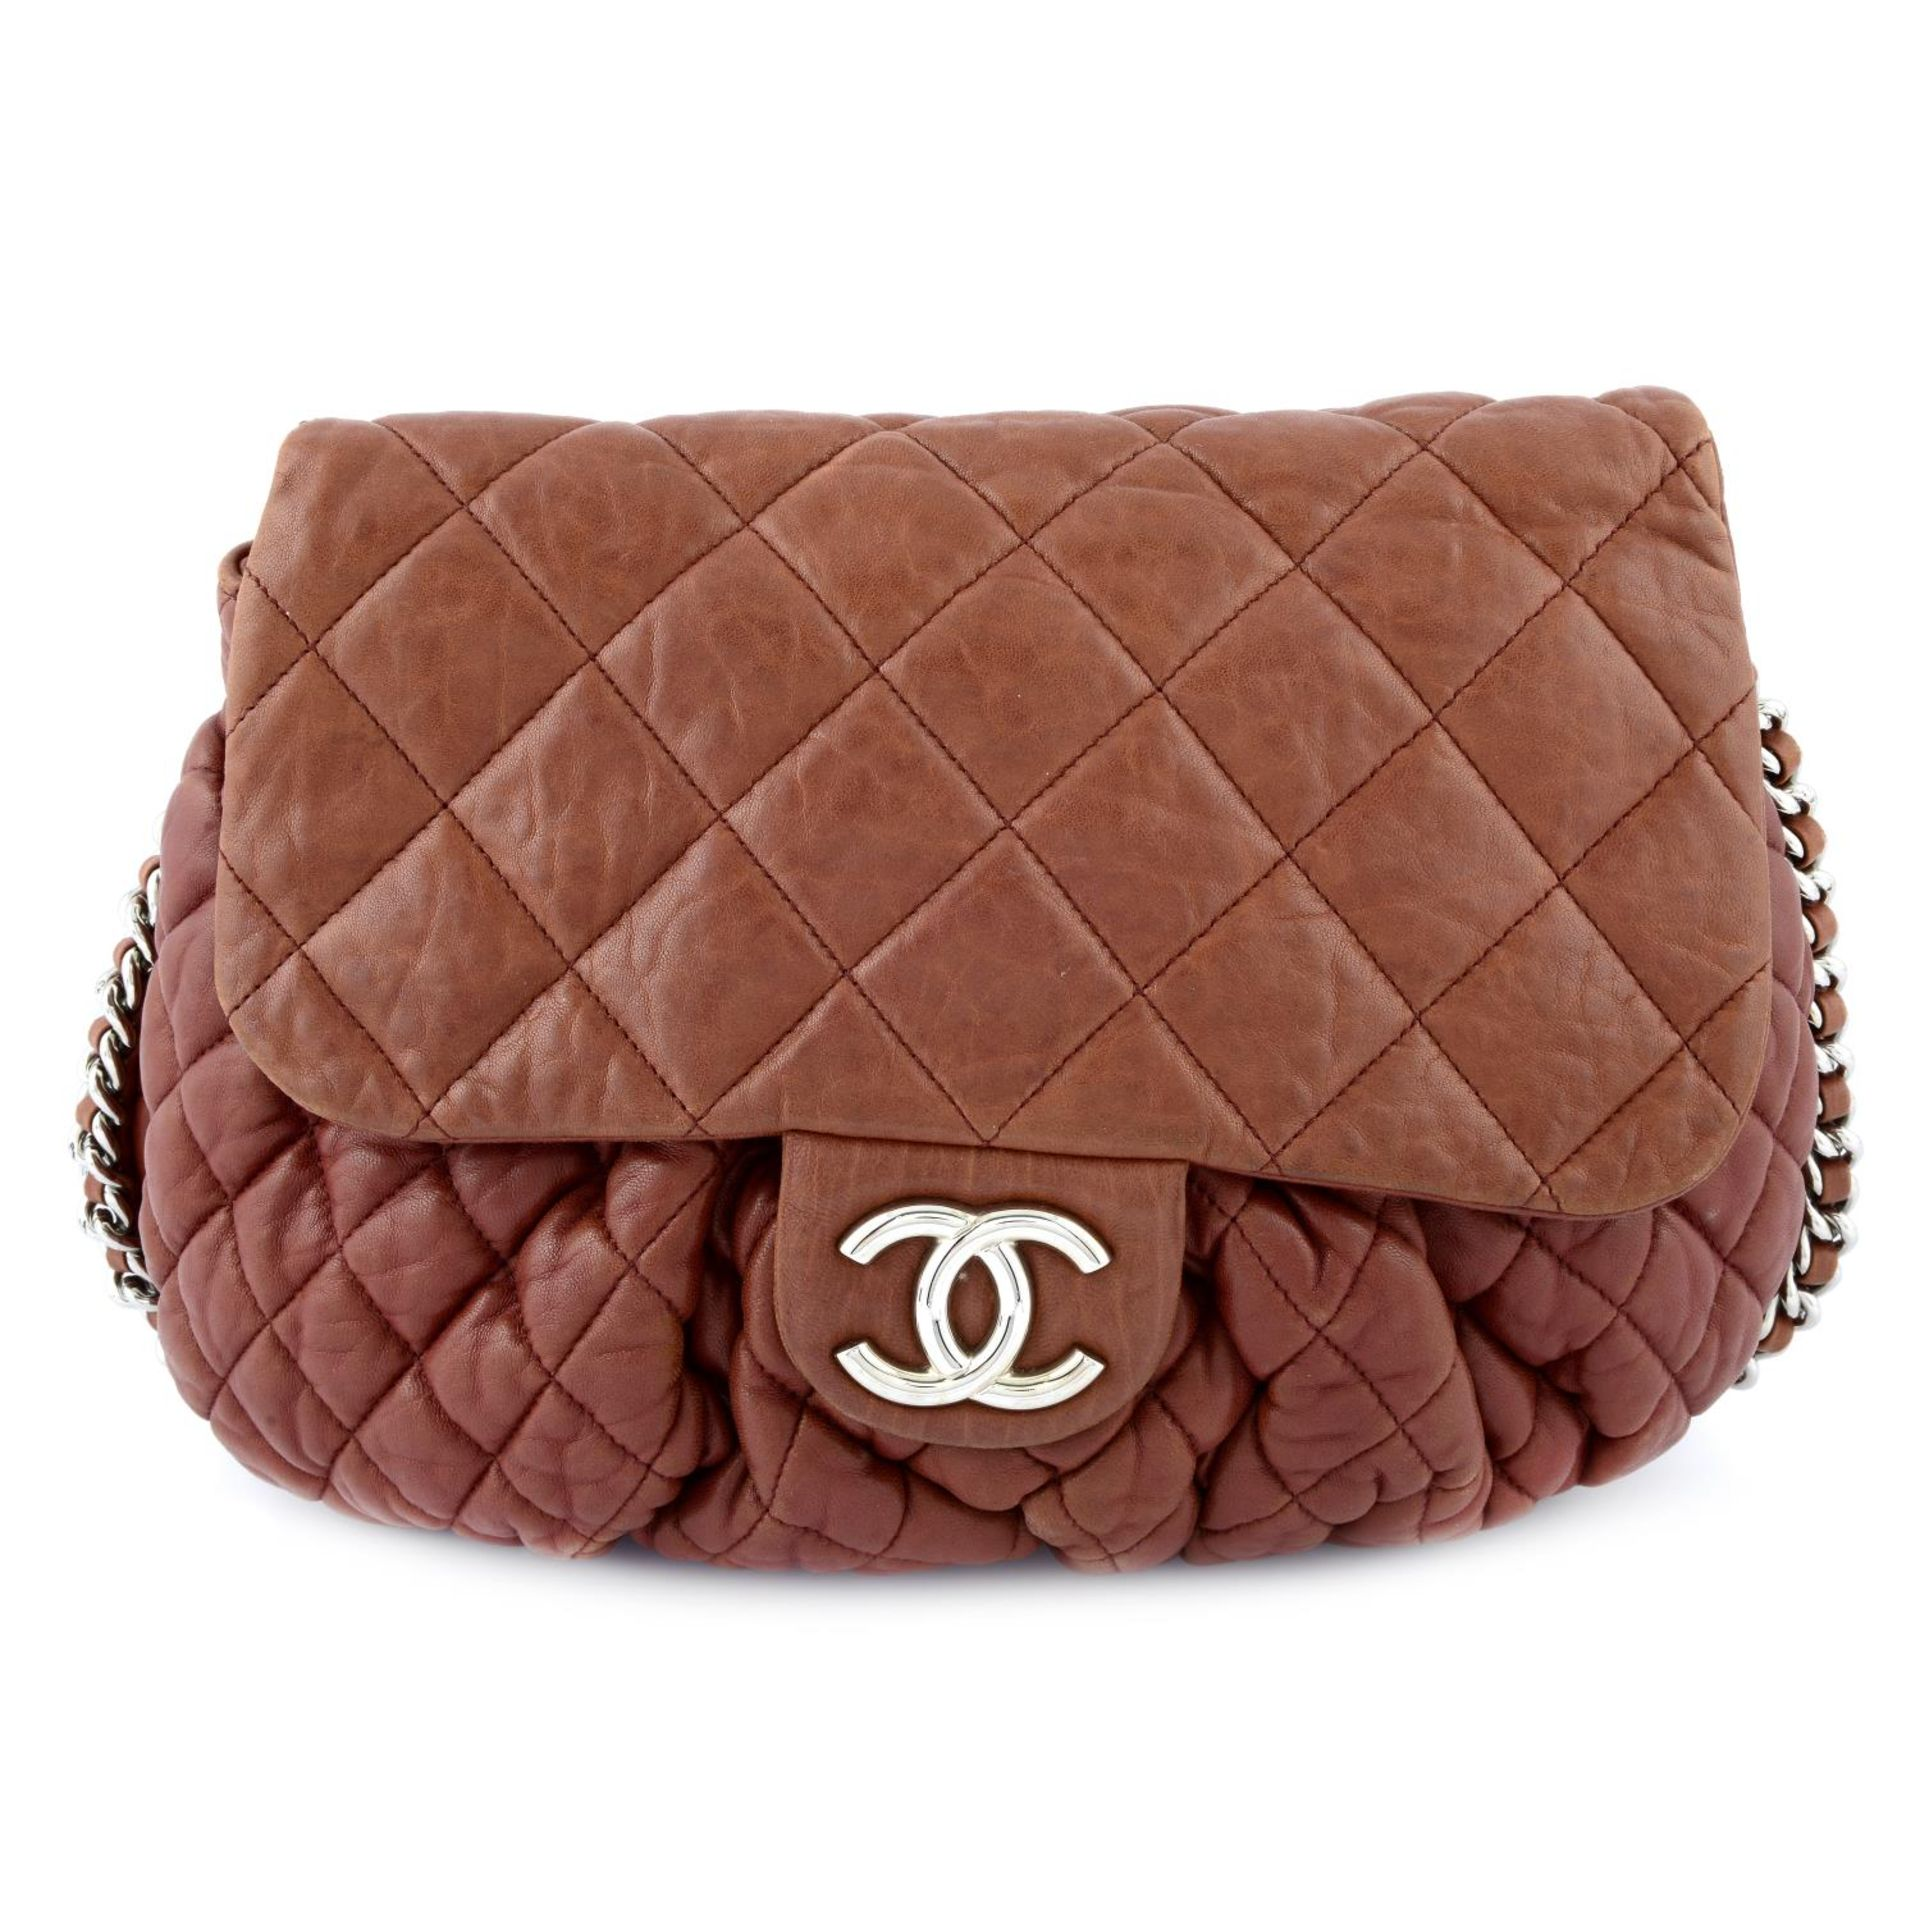 CHANEL - a quilted lambskin leather chain around handbag.